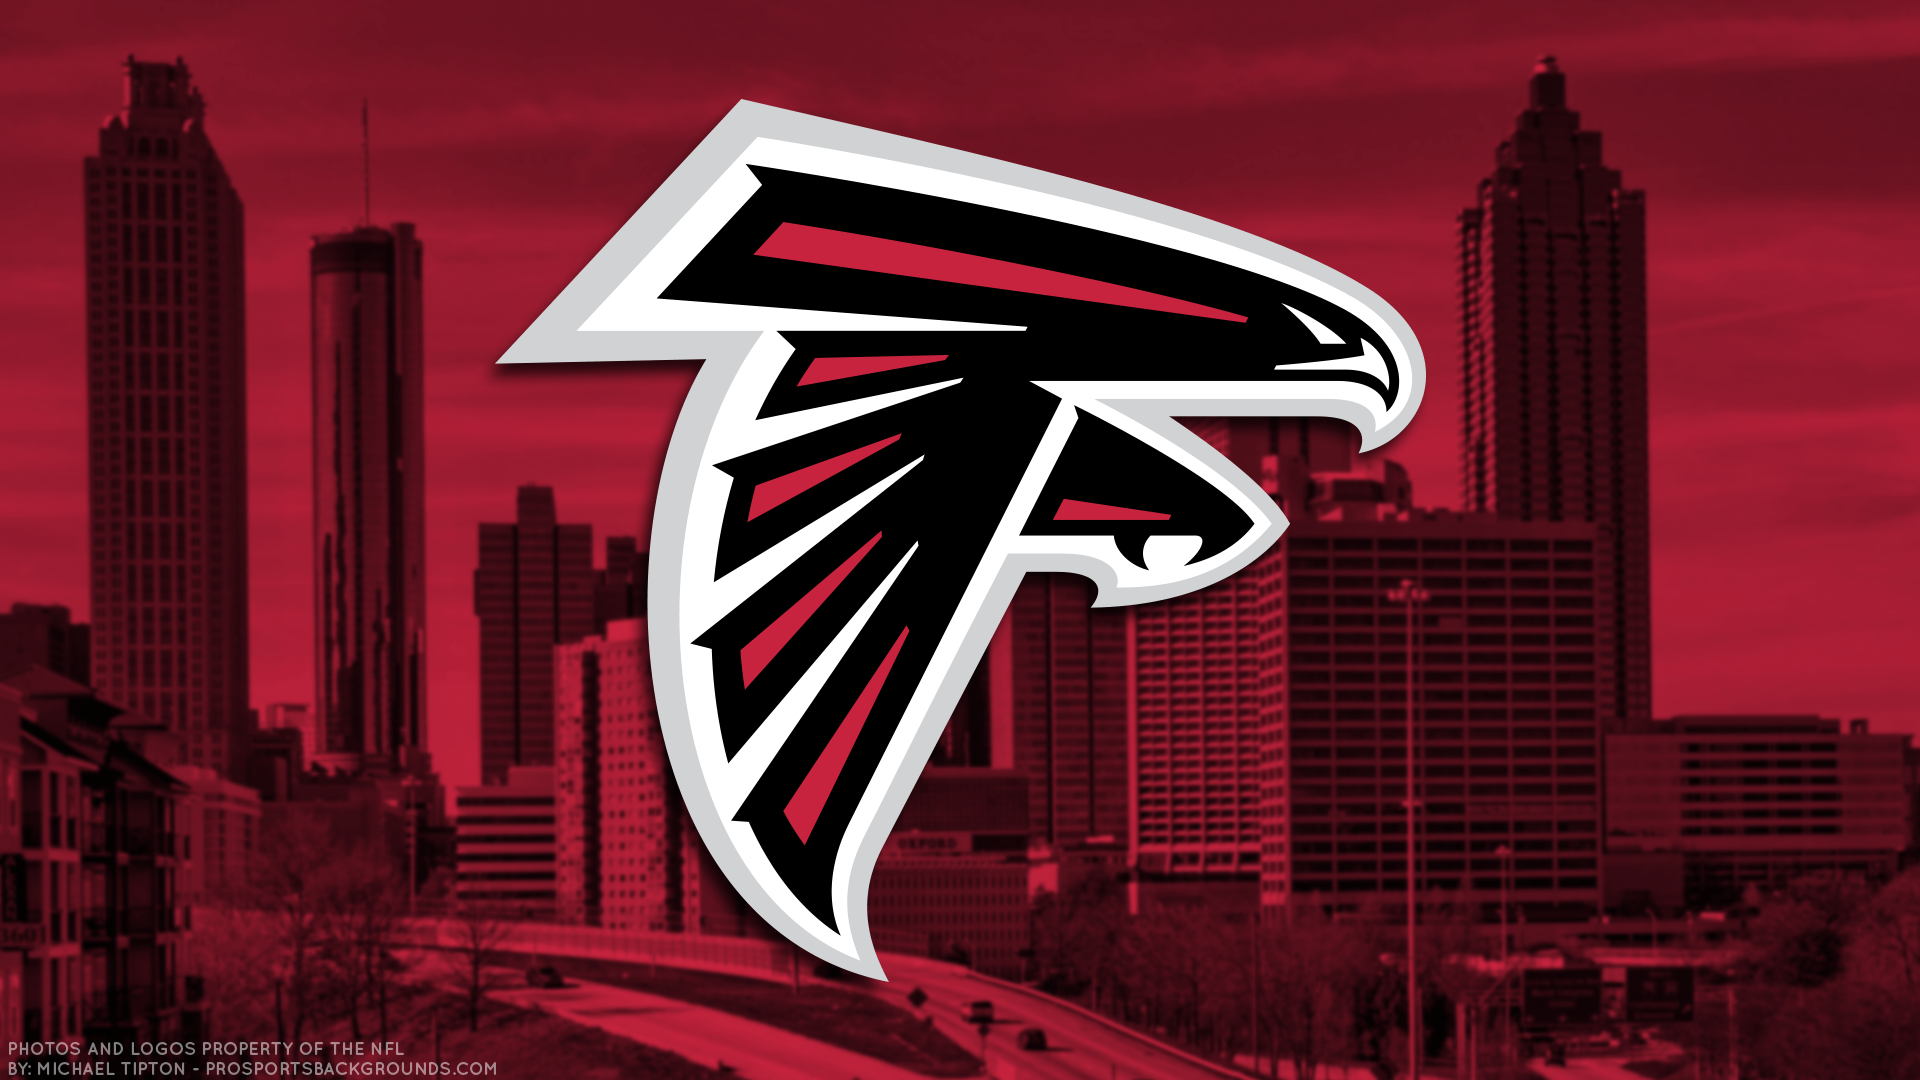 Atlanta Falcons 2018 Wallpaper Hd 64 Images: Atlanta Falcons 2018 Wallpapers